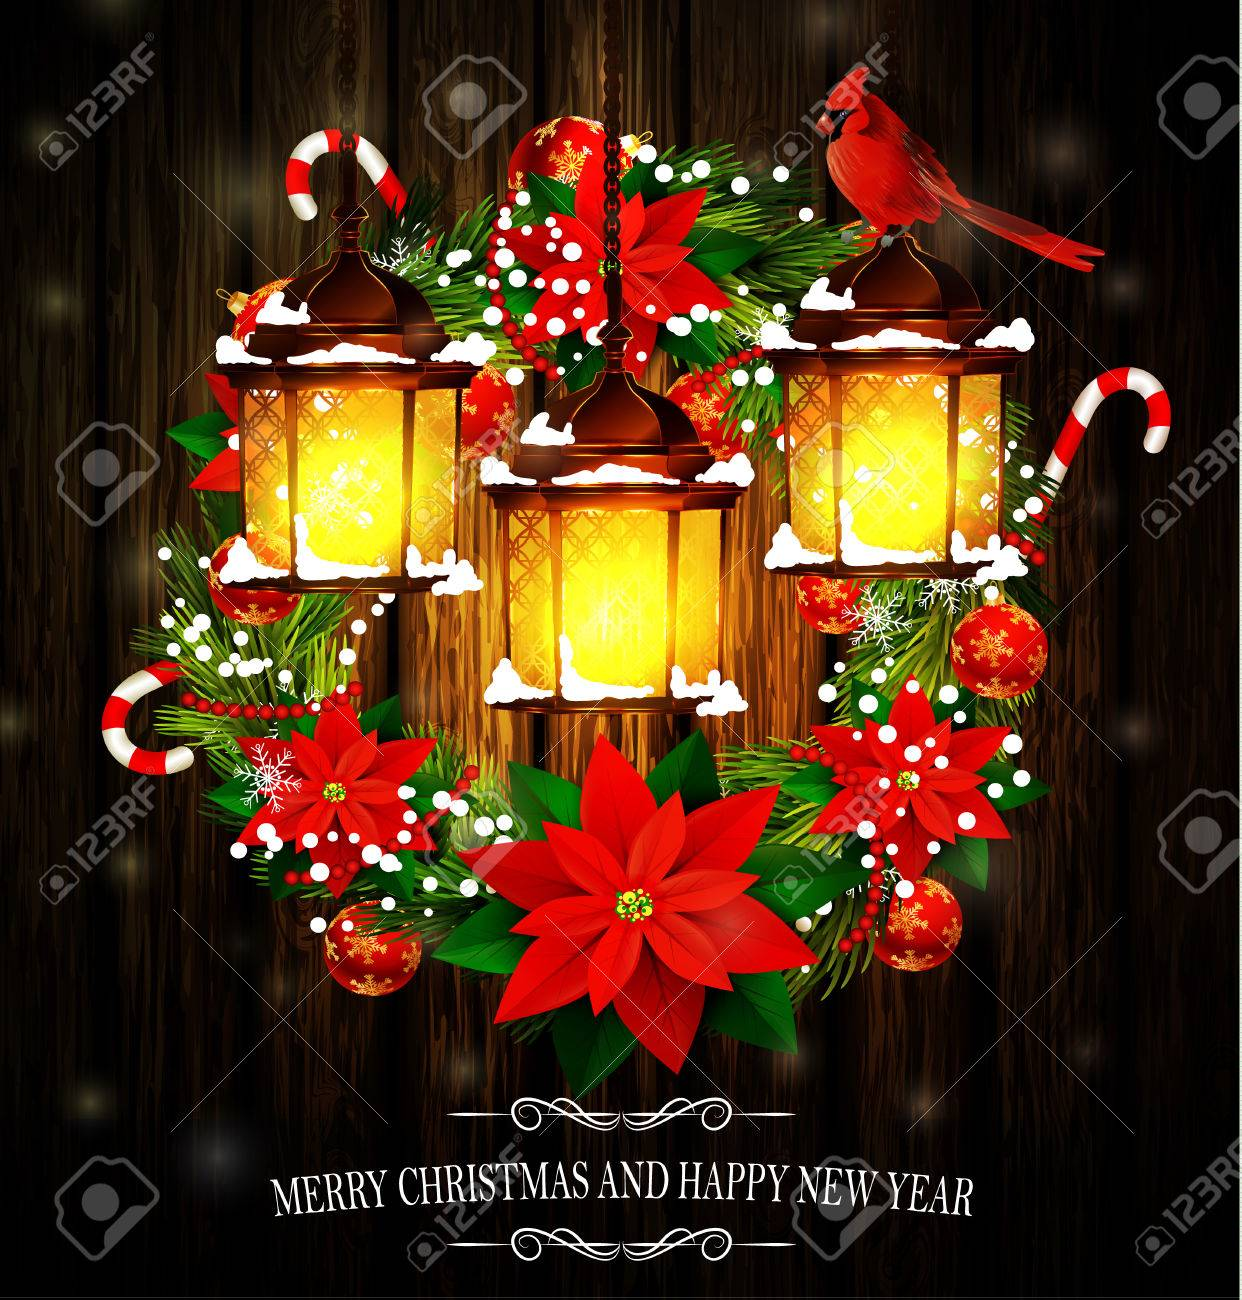 christmas decoration wreath with street lights and evergreen trees and cardinal birds on wooden background greeting